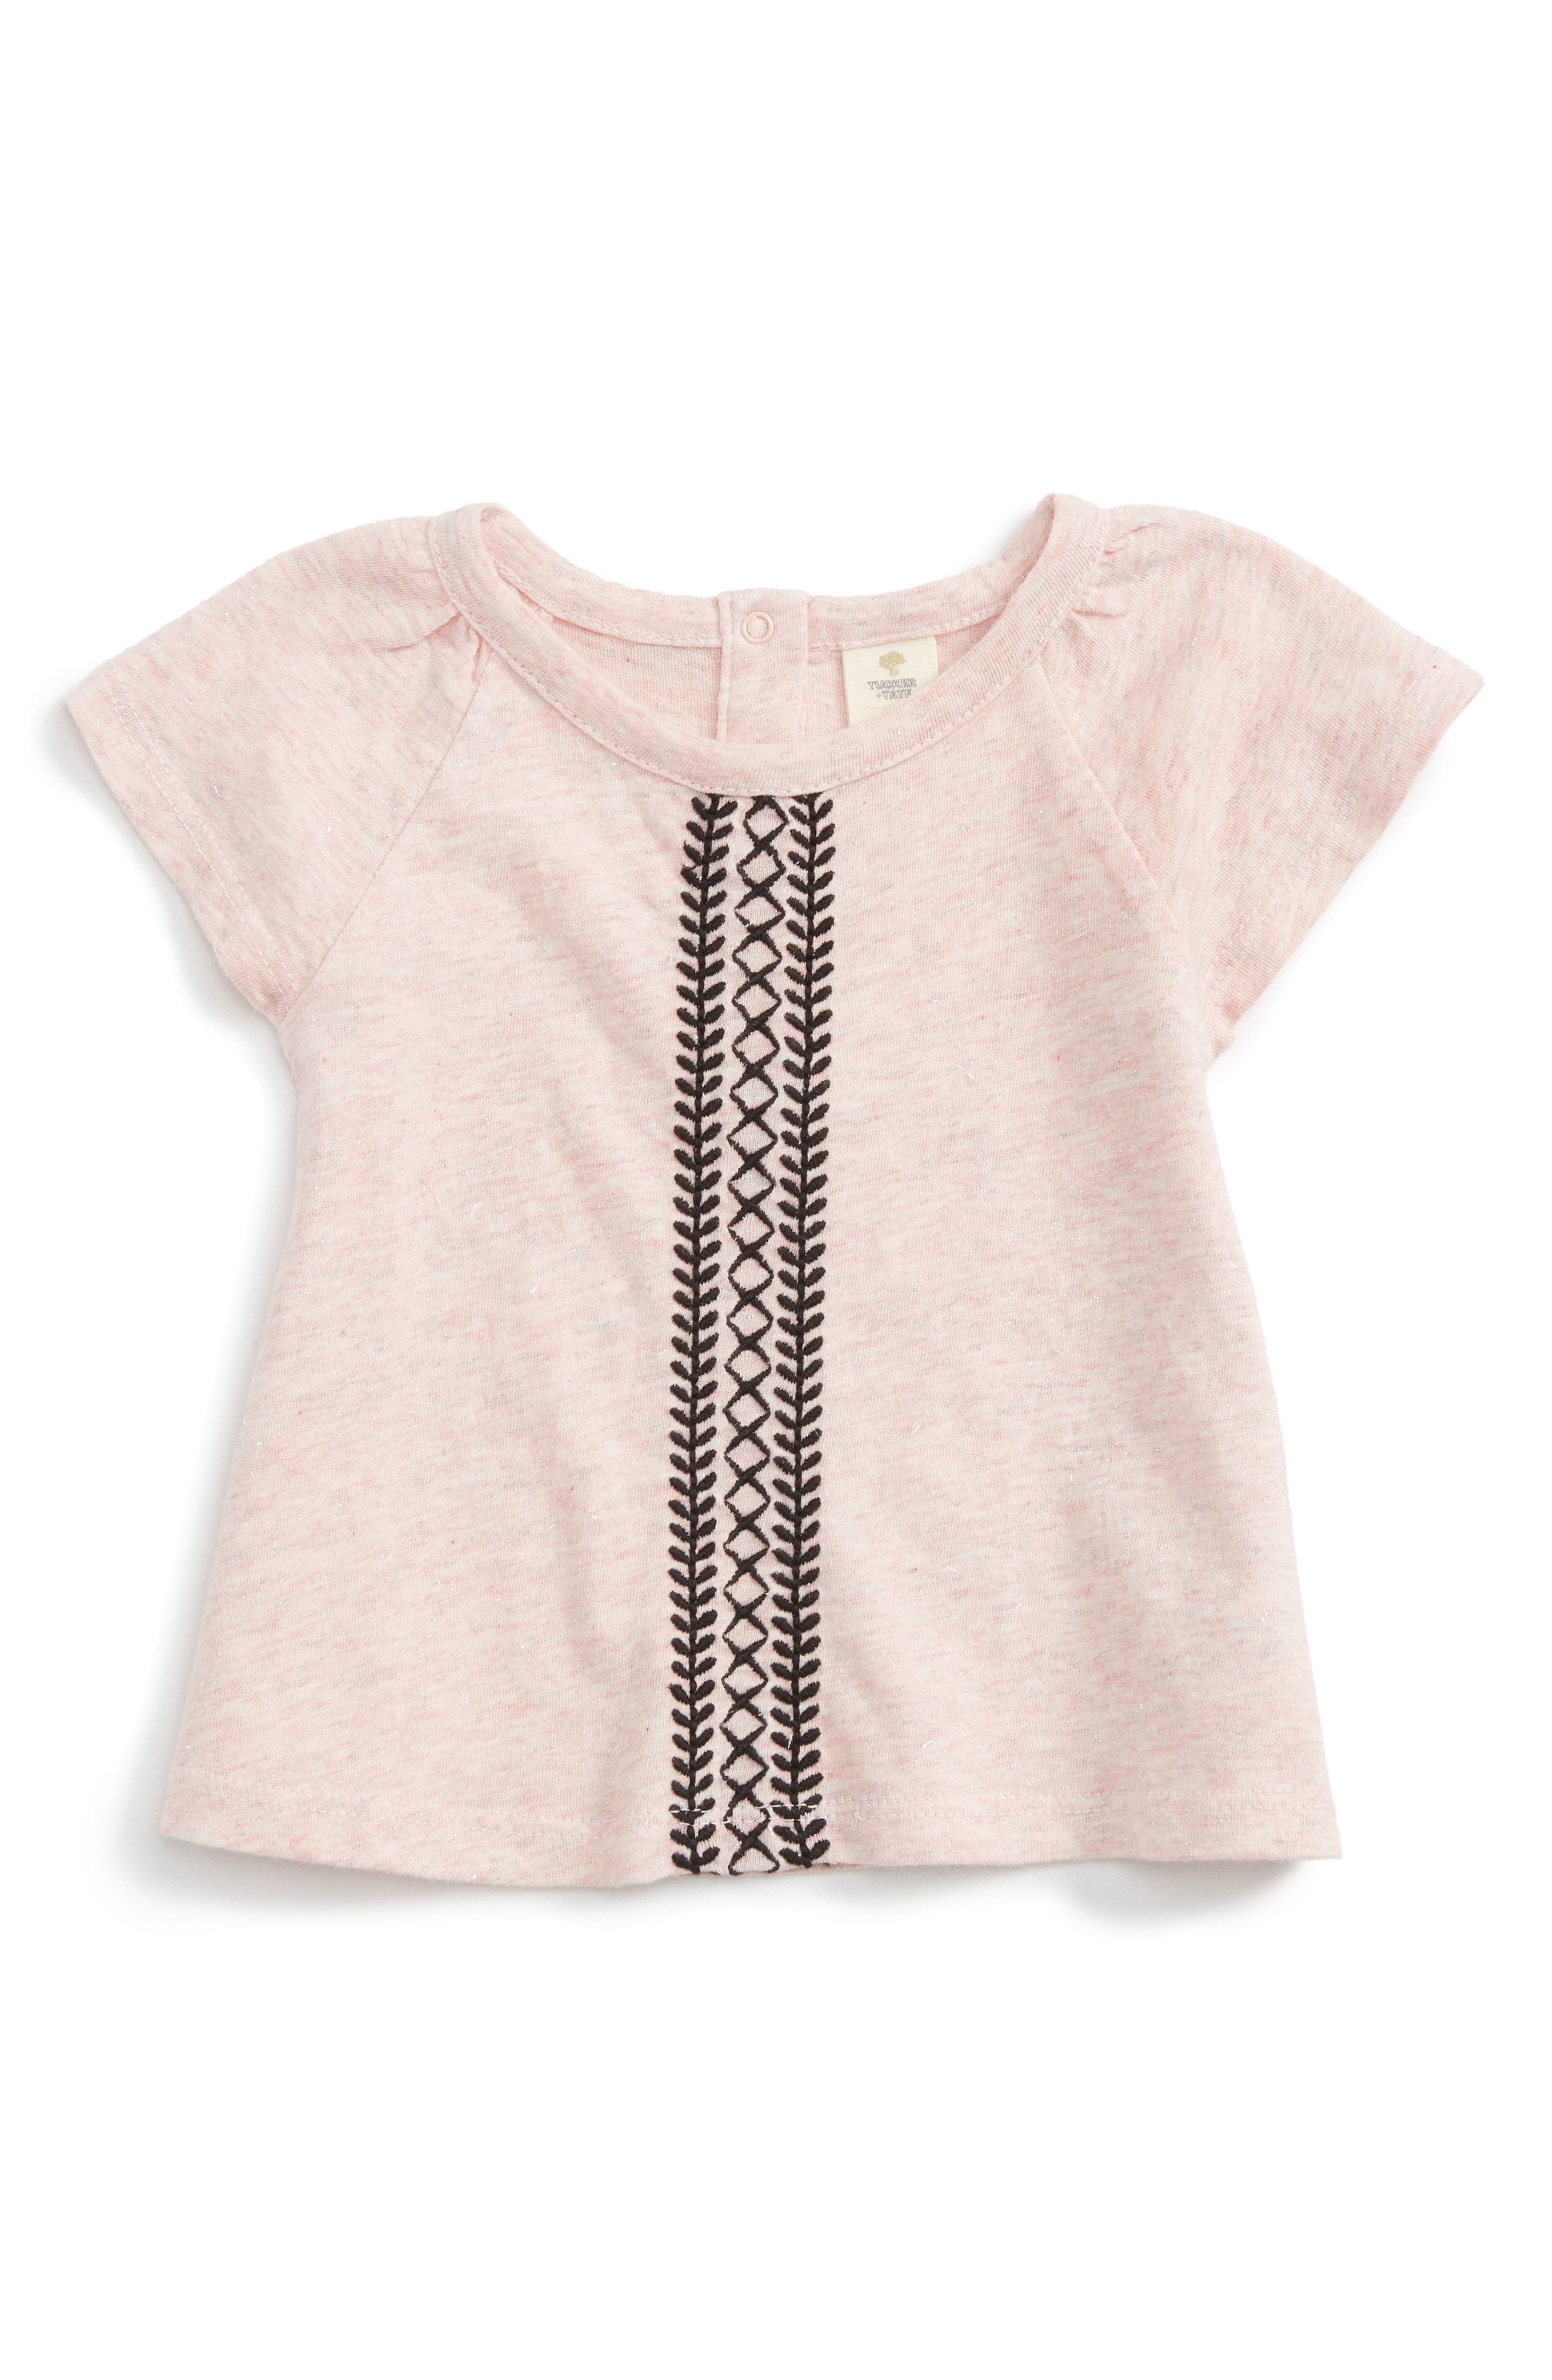 Alternate Image 1 Selected - Tucker + Tate Embroidered Sparkle Tee (Baby Girls)